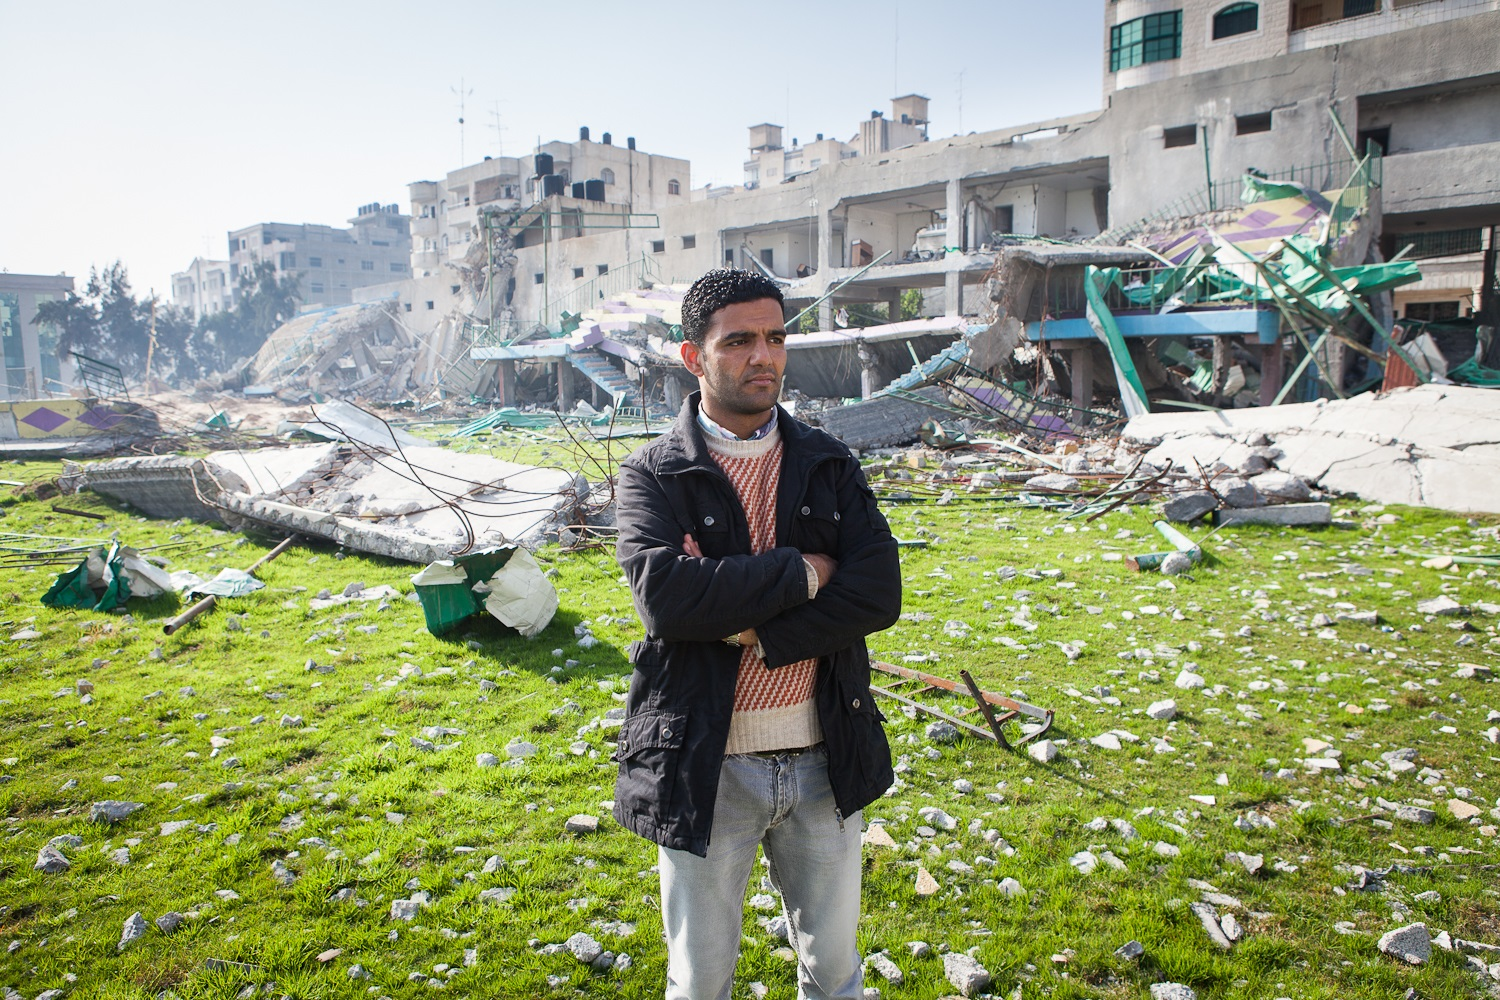 Sarsak visits Gaza stadium destroyed by Israel in Dec 2012